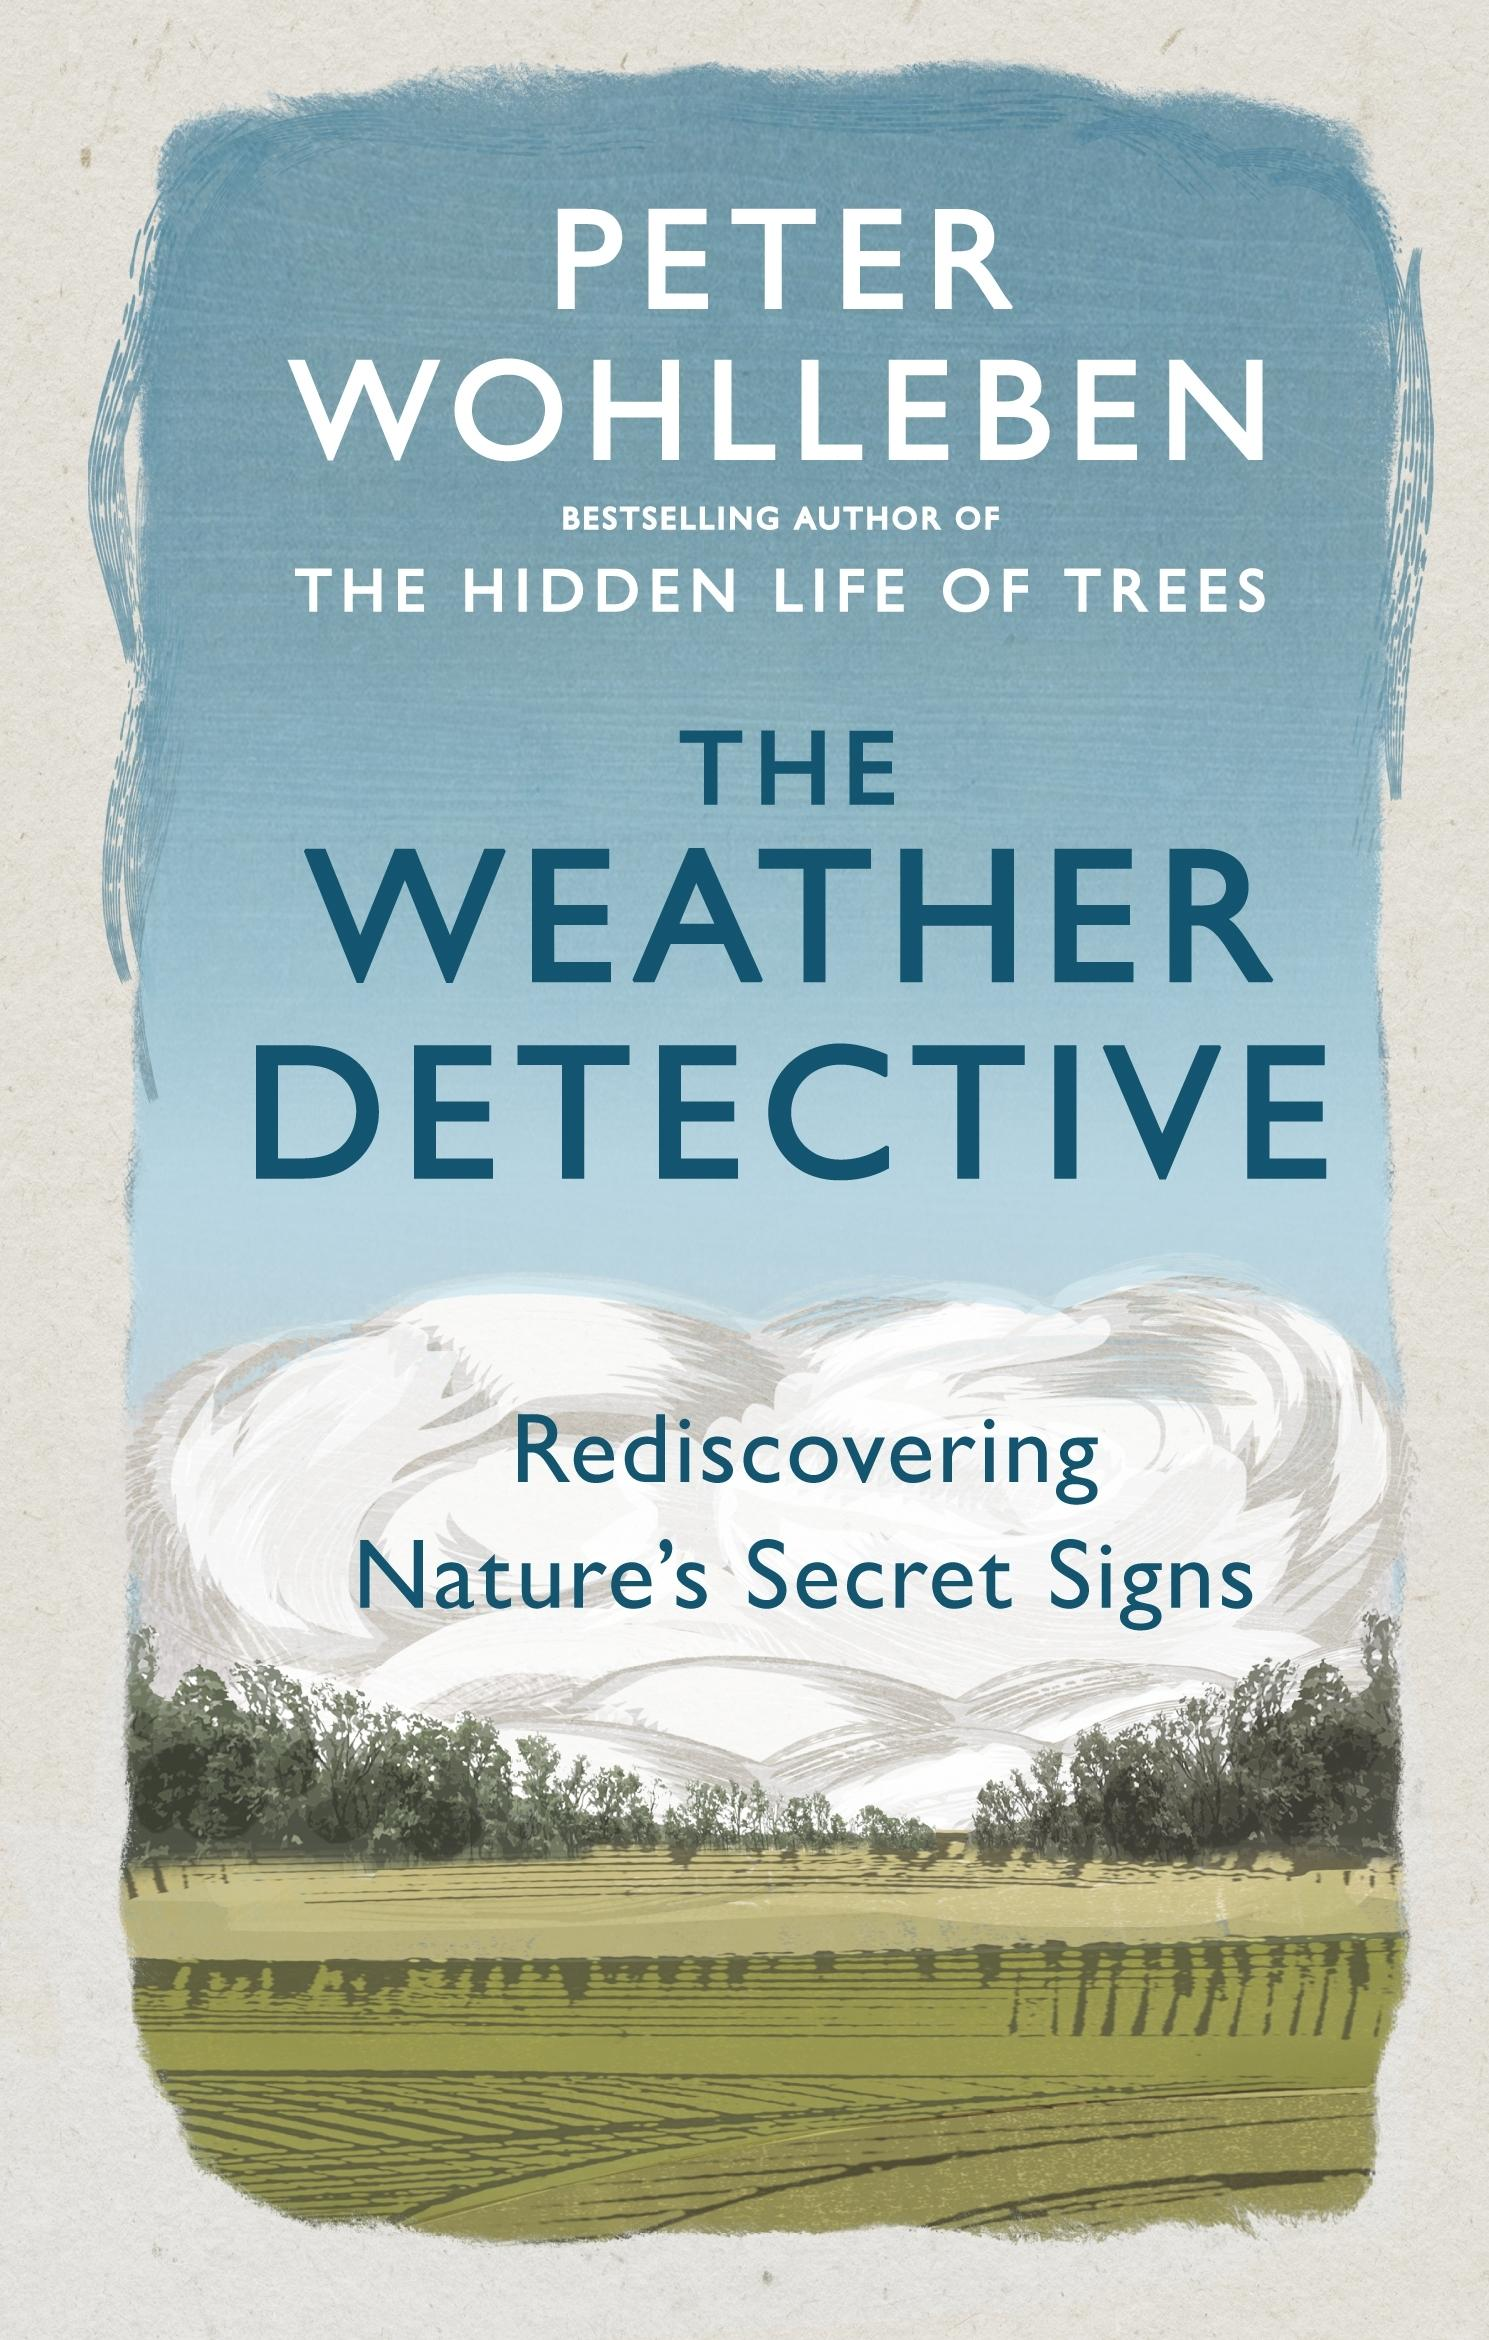 The Weather Detective: Rediscovering Nature'sSecretSigns